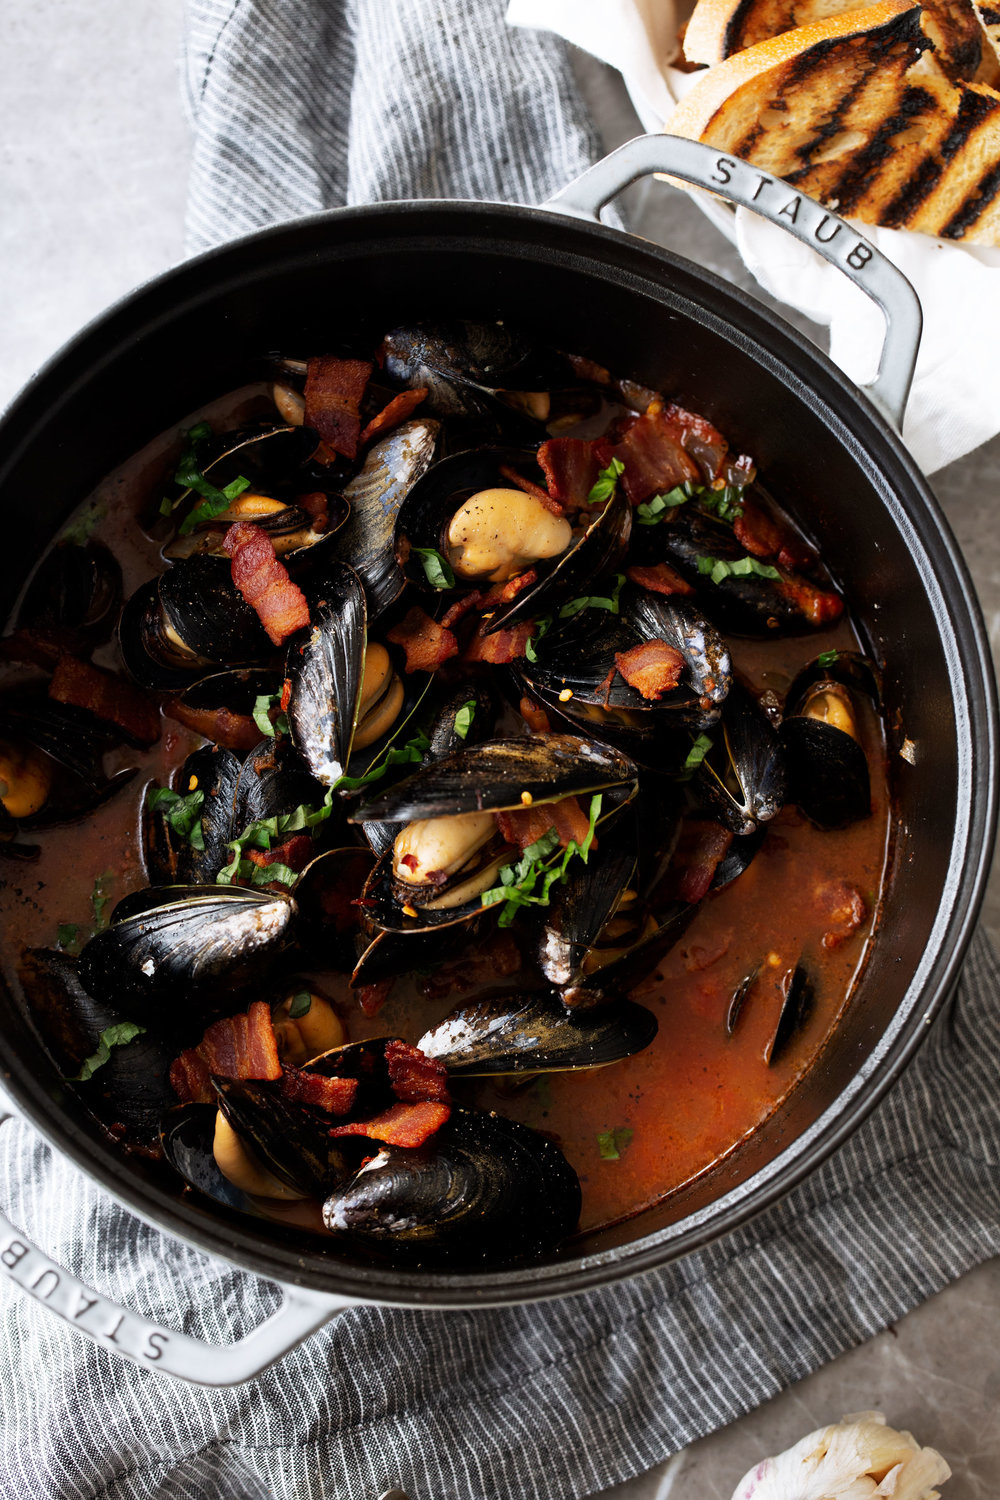 Mussels-in-Tomato-Broth-with-Bacon-Pomi-9.jpg